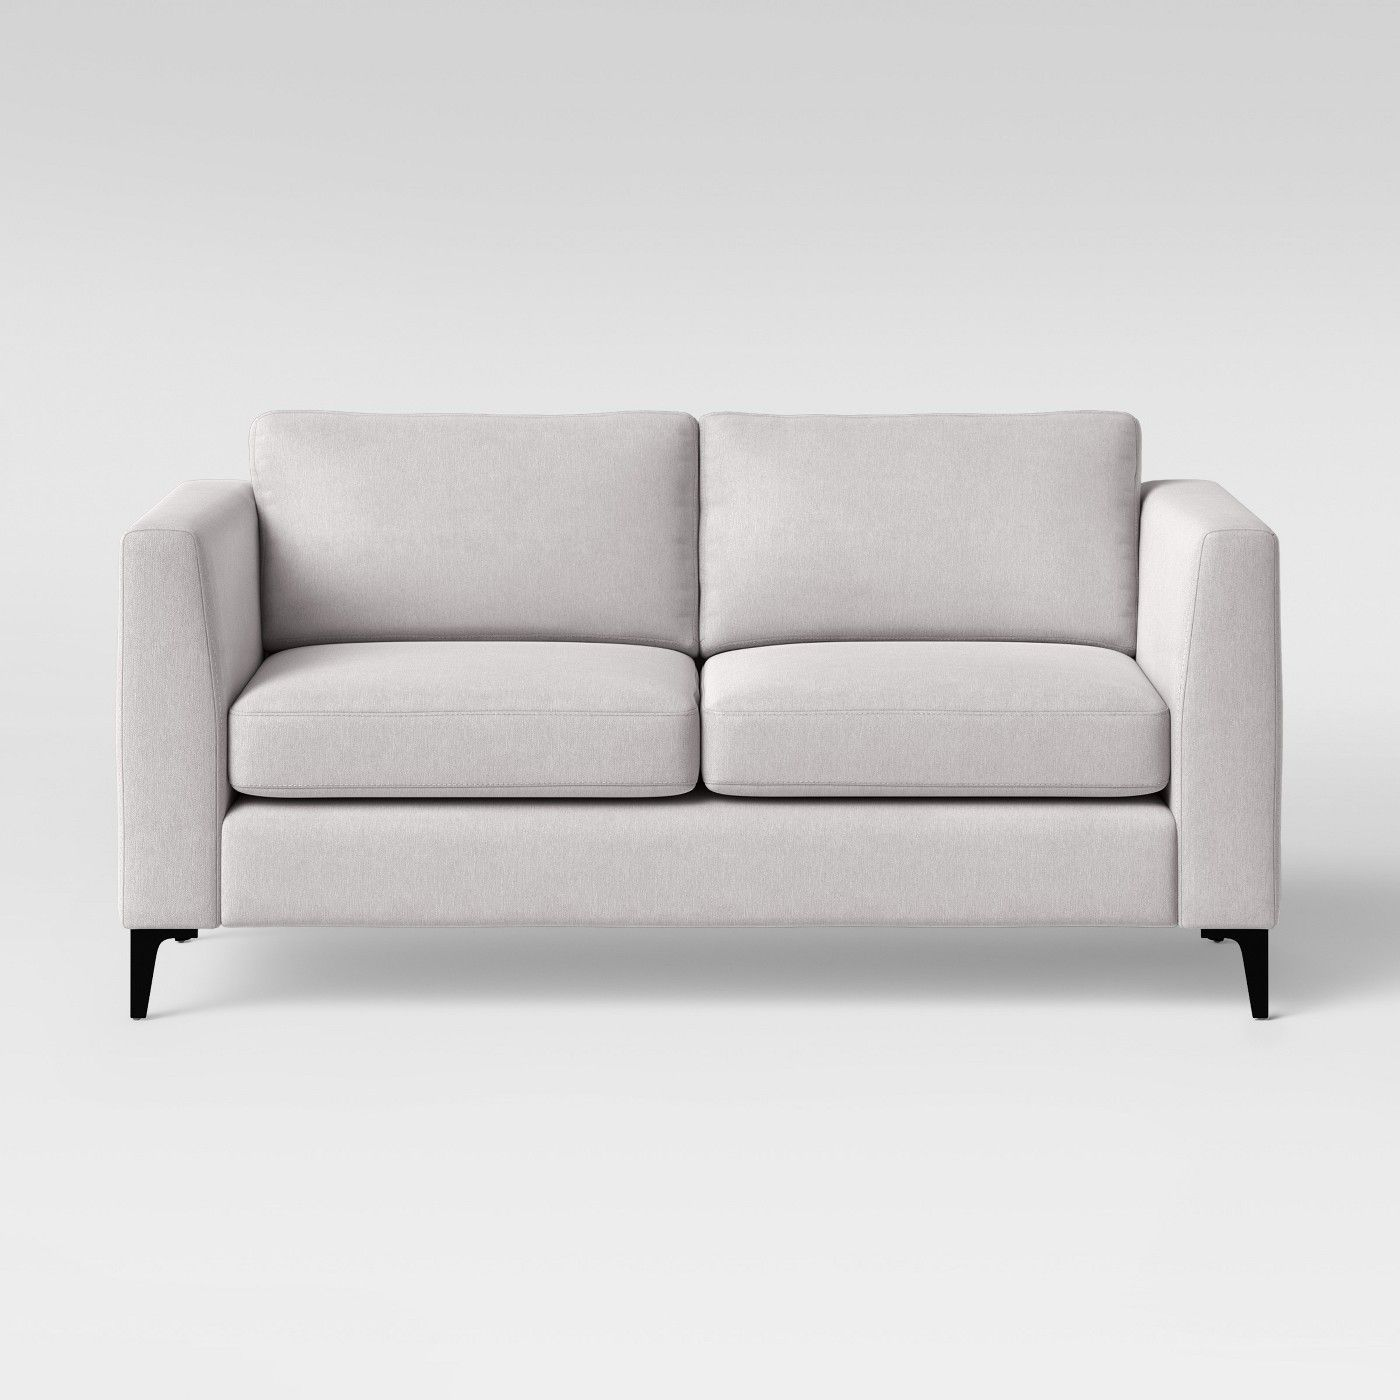 71 Medway Sofa With Metal Legs Light Gray Project 62 Sofa Trending Decor Living Room Furniture